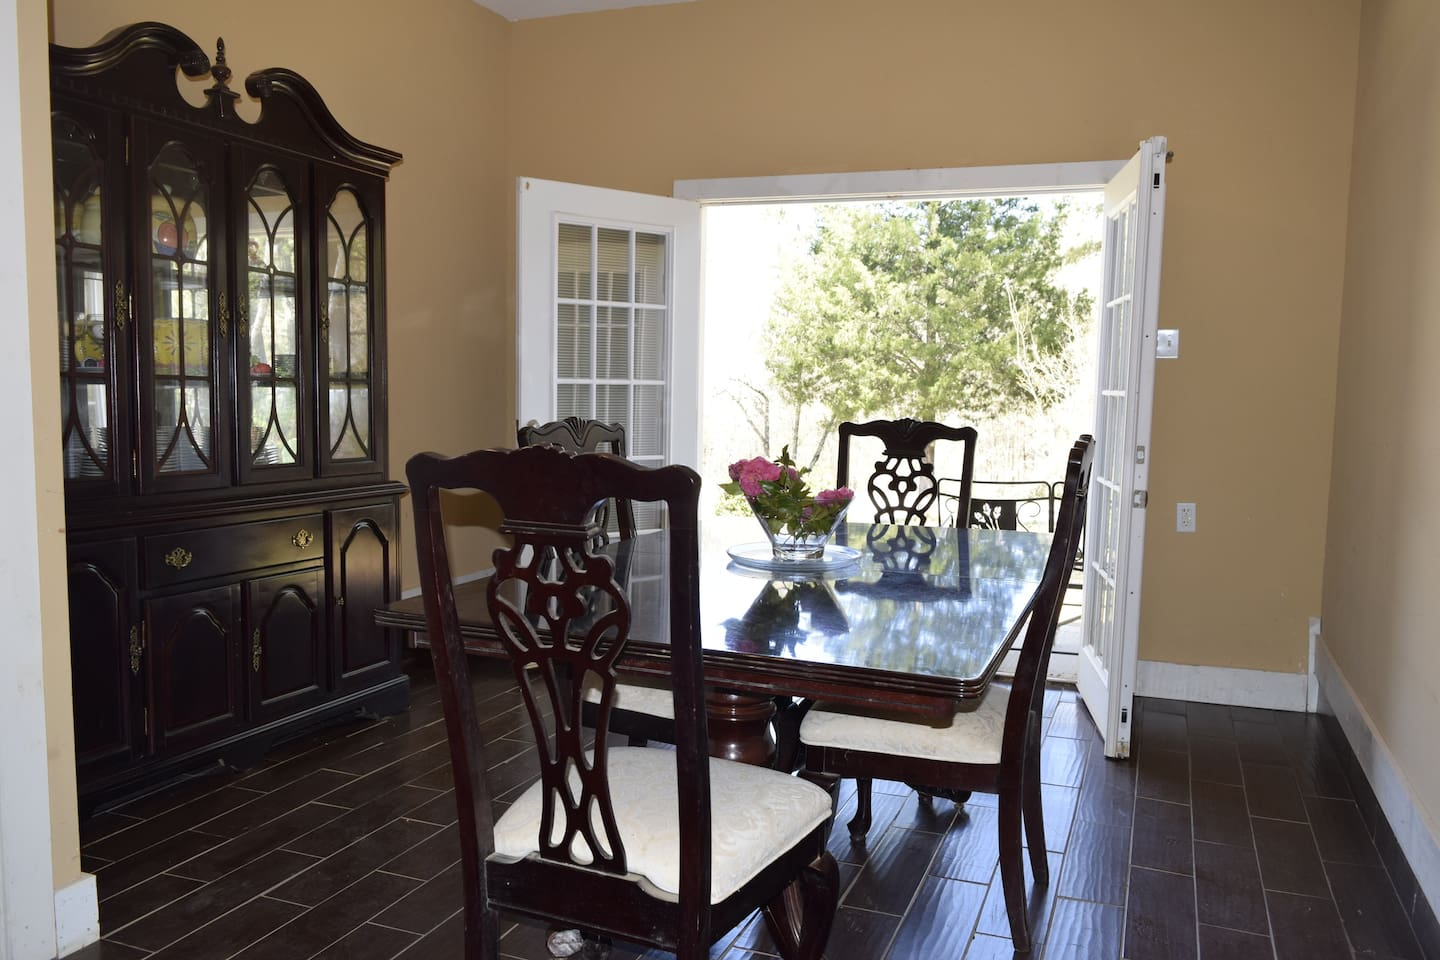 Dining Room with French Doors that open to an outdoor seating area at the front of the house.